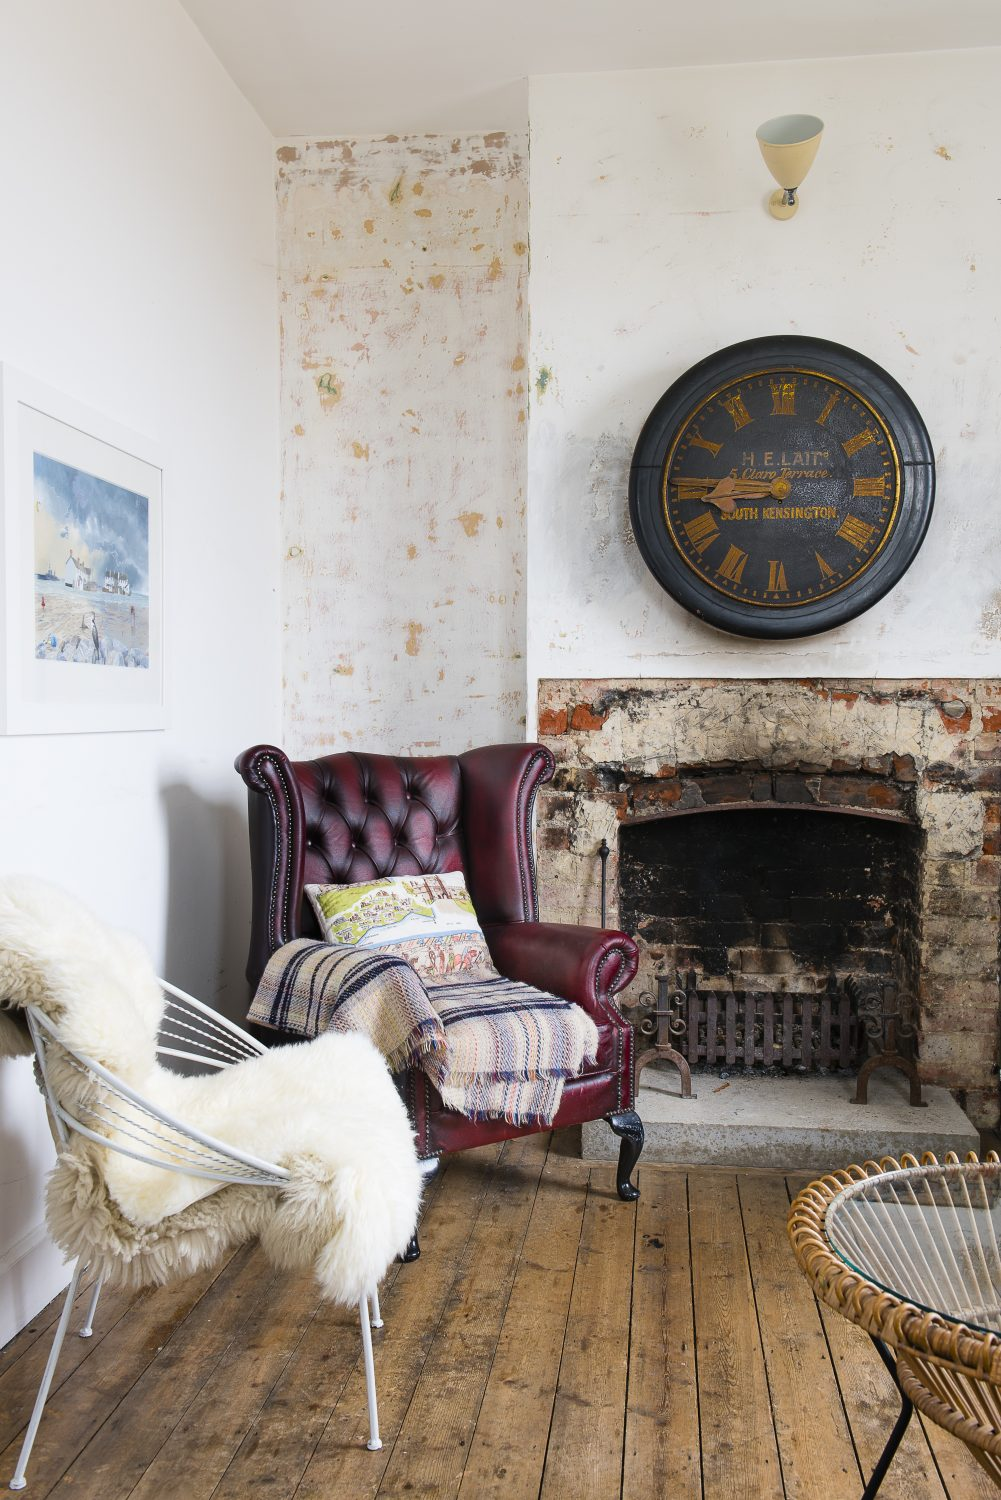 The clock in the sitting room was found in South Kensington on one of Marta's father's sites